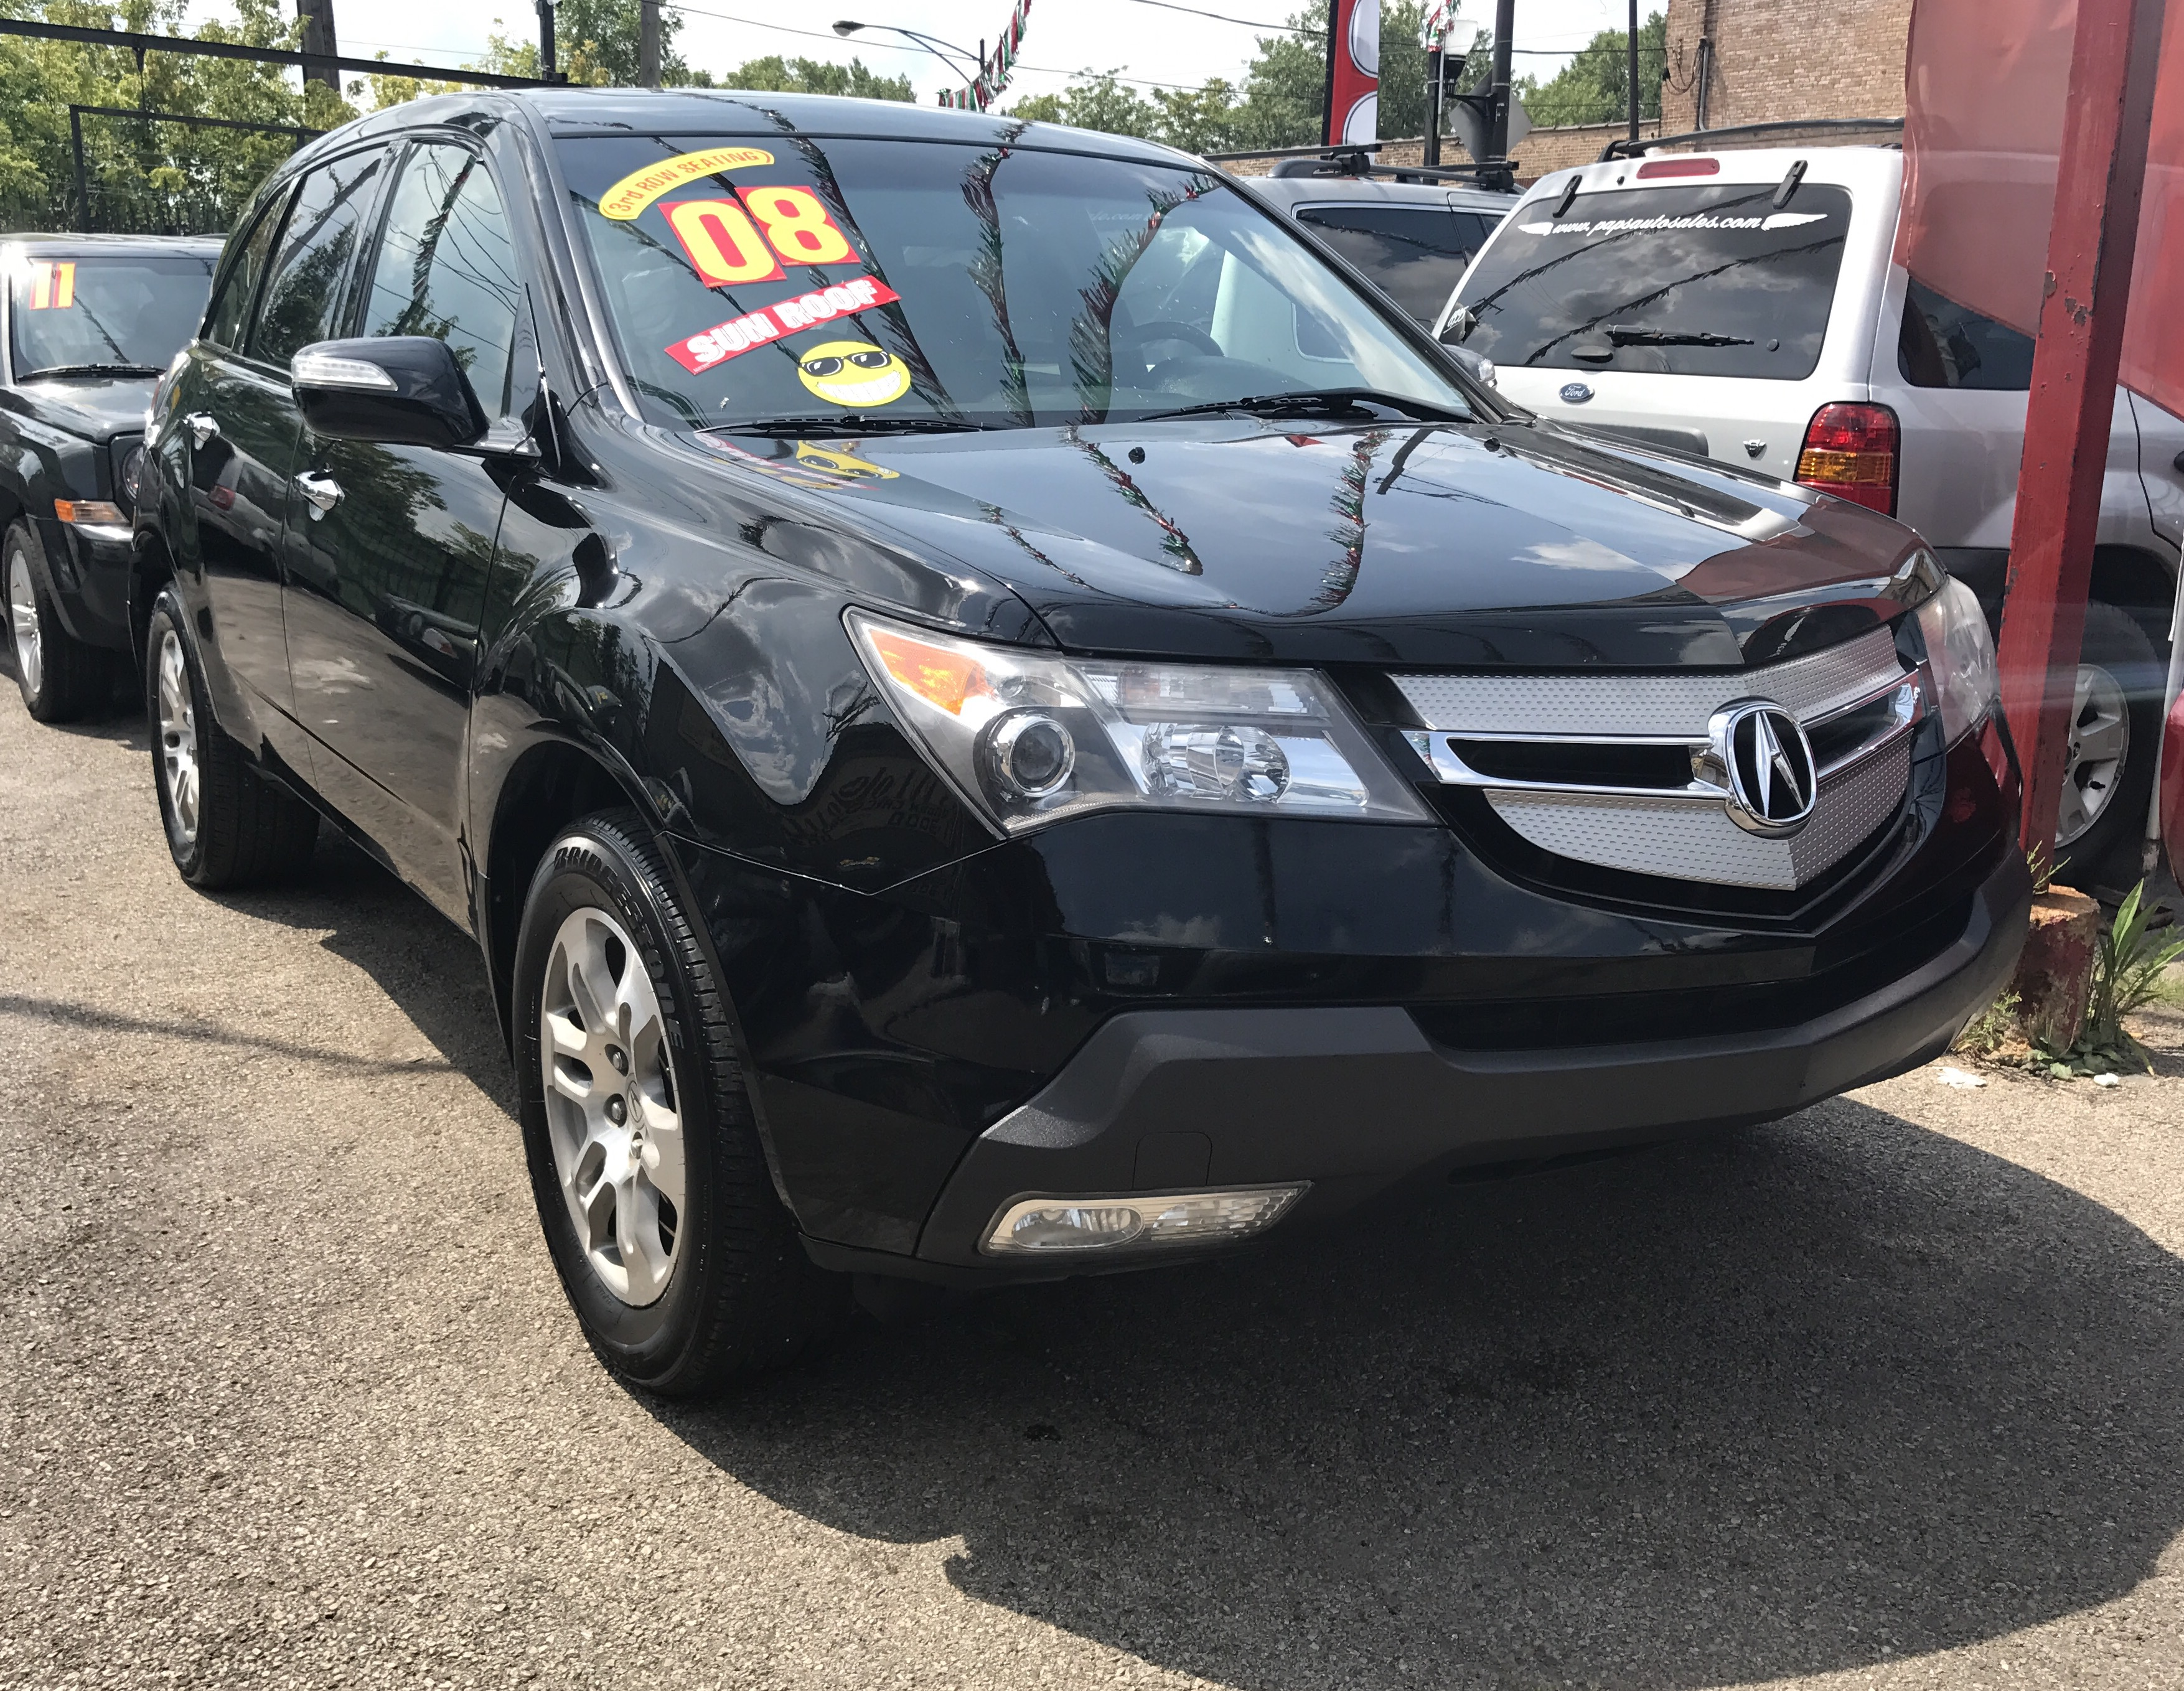 cars of models the beautiful for connecticut new dealers lovely mdx sale acura ohio